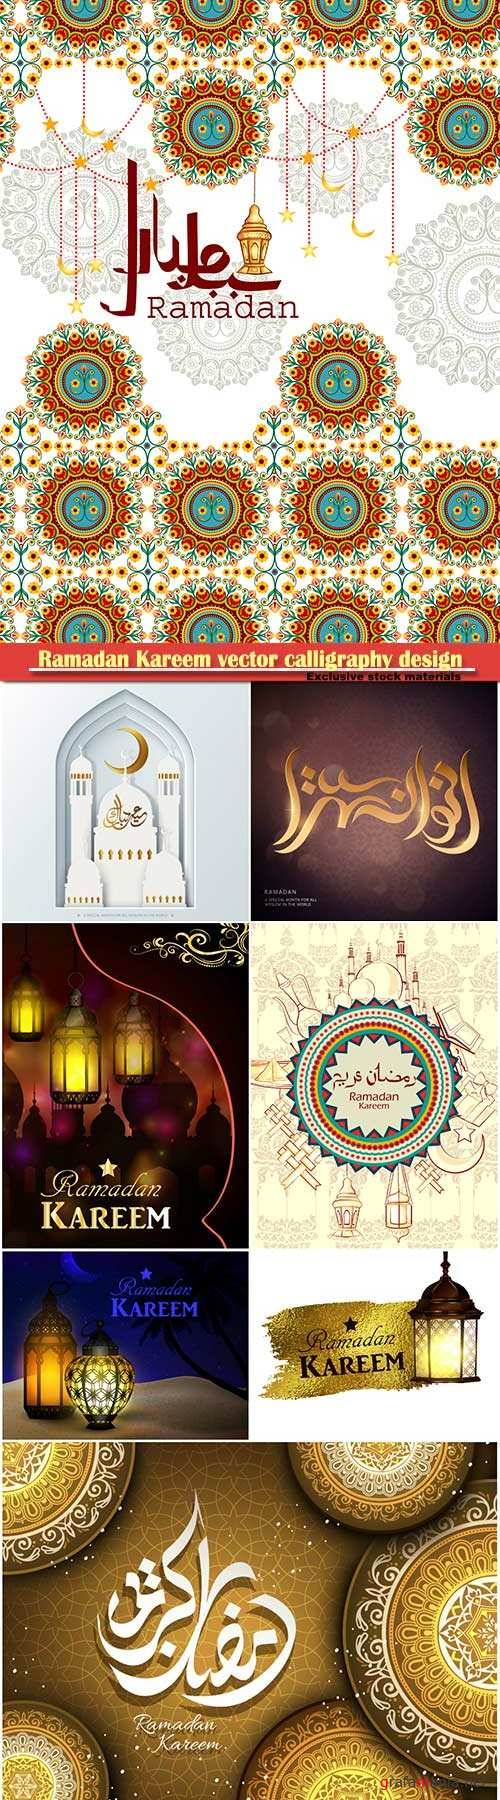 Ramadan Kareem vector calligraphy design with decorative floral pattern,mosque silhouette, crescent and glittering islamic background # 18